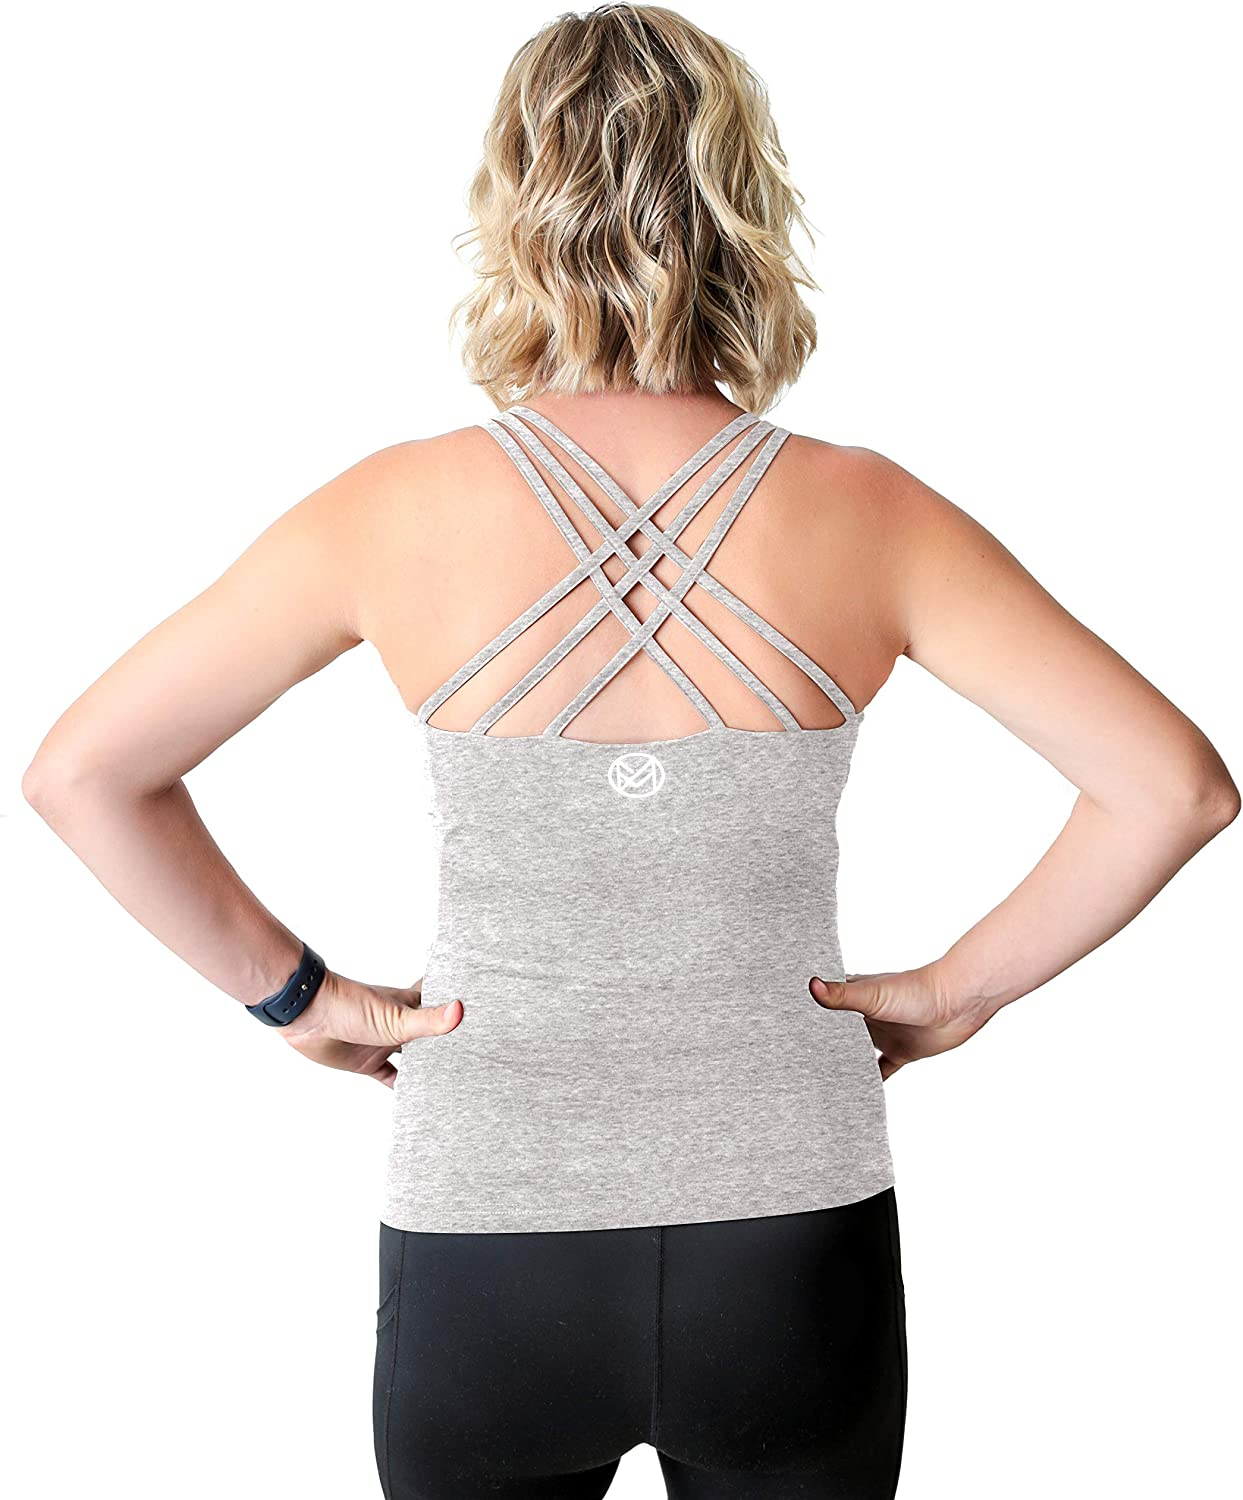 Movemama Maternity Workout and Yoga Top with Cross Back Detail, Shelf Bra and Removable Padding at  Women's Clothing store